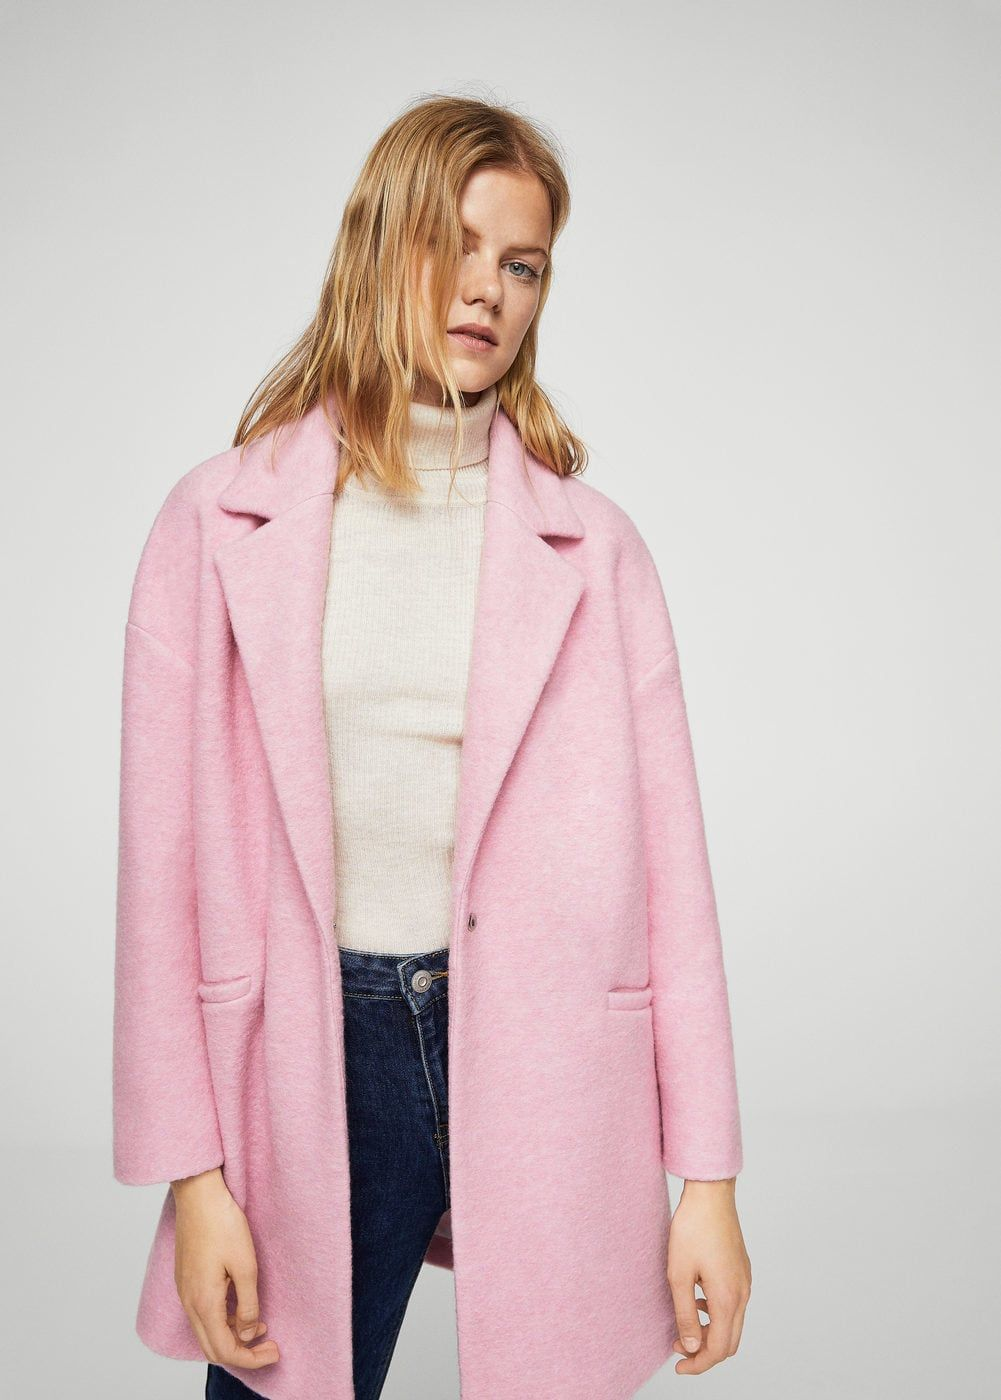 Unstructured wool-blend coat - Women   Jackets + Coats   Pinterest ... 6ae6692d65d1